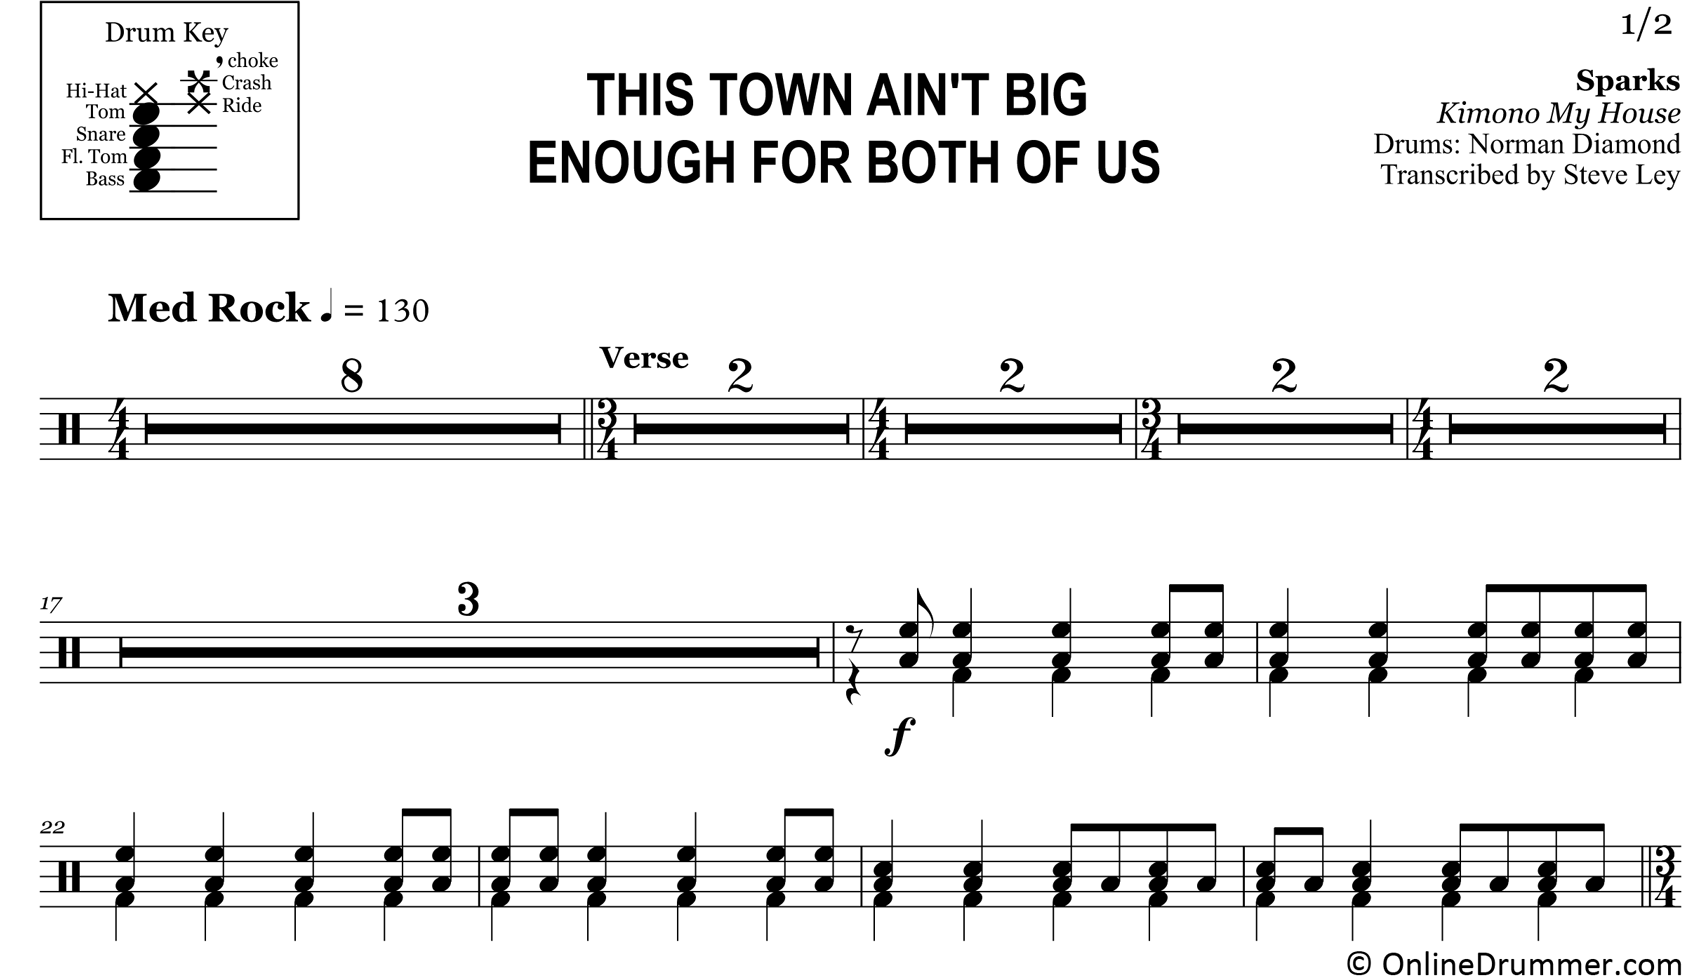 This Town Ain't Big Enough For The Both Of Us - Sparks - Drum Sheet Music